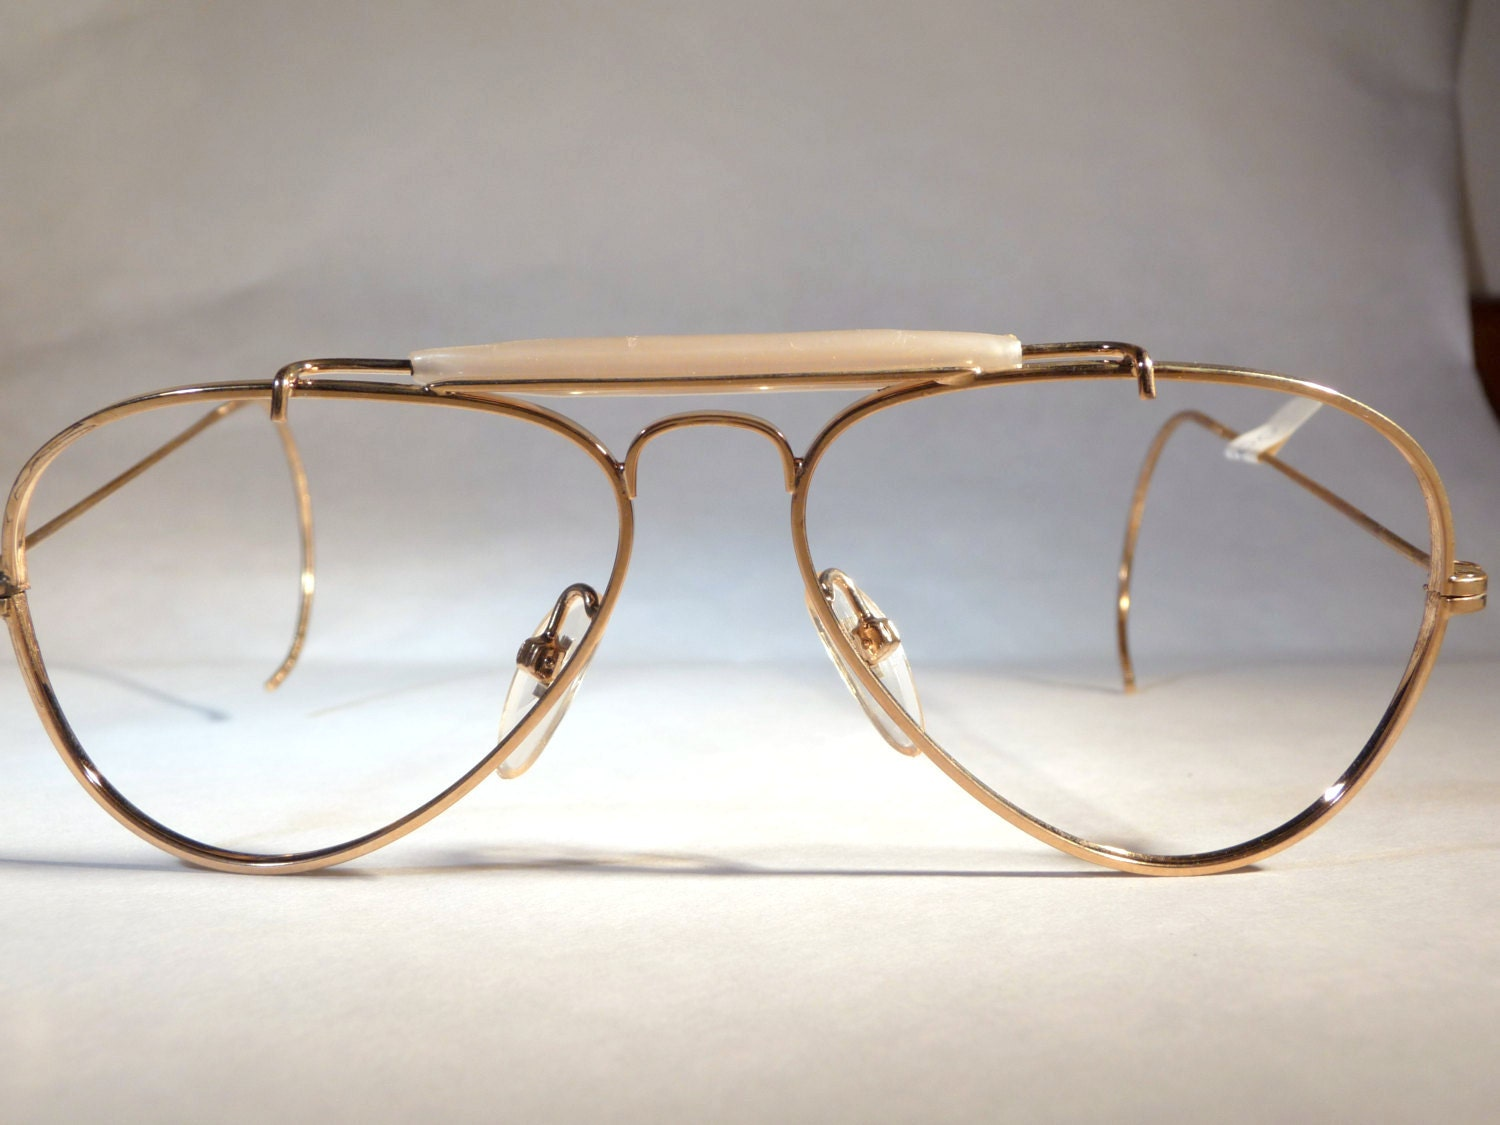 Glasses Frames Italian : Italian Eyeglasses 1980s golden metal aviators frames